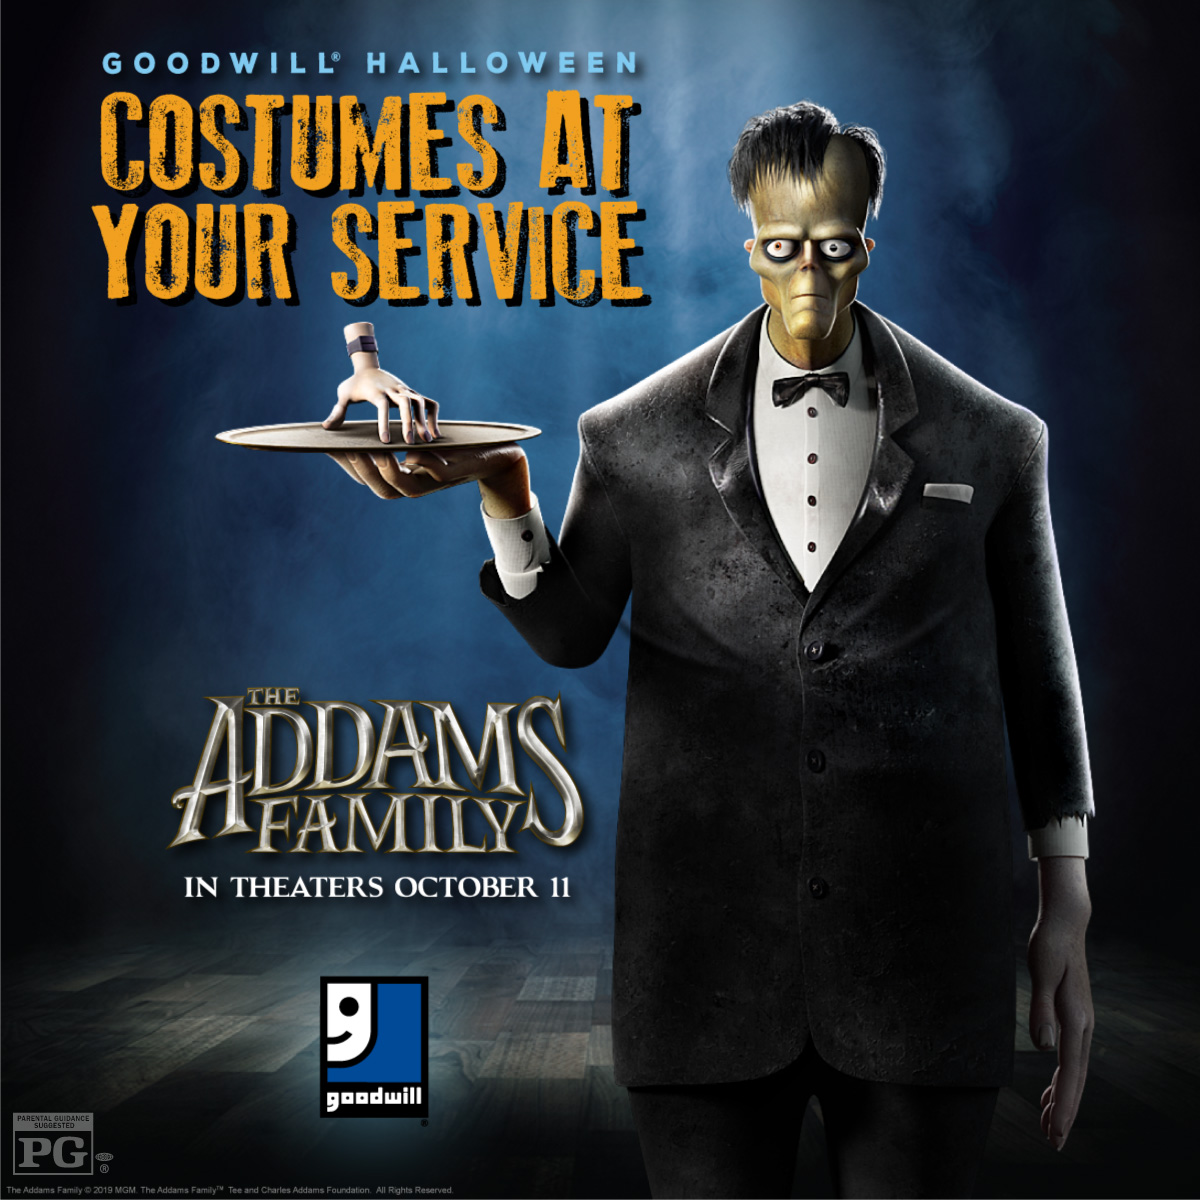 Goodwill® and The Addams Family Offer Creepy Inspiration